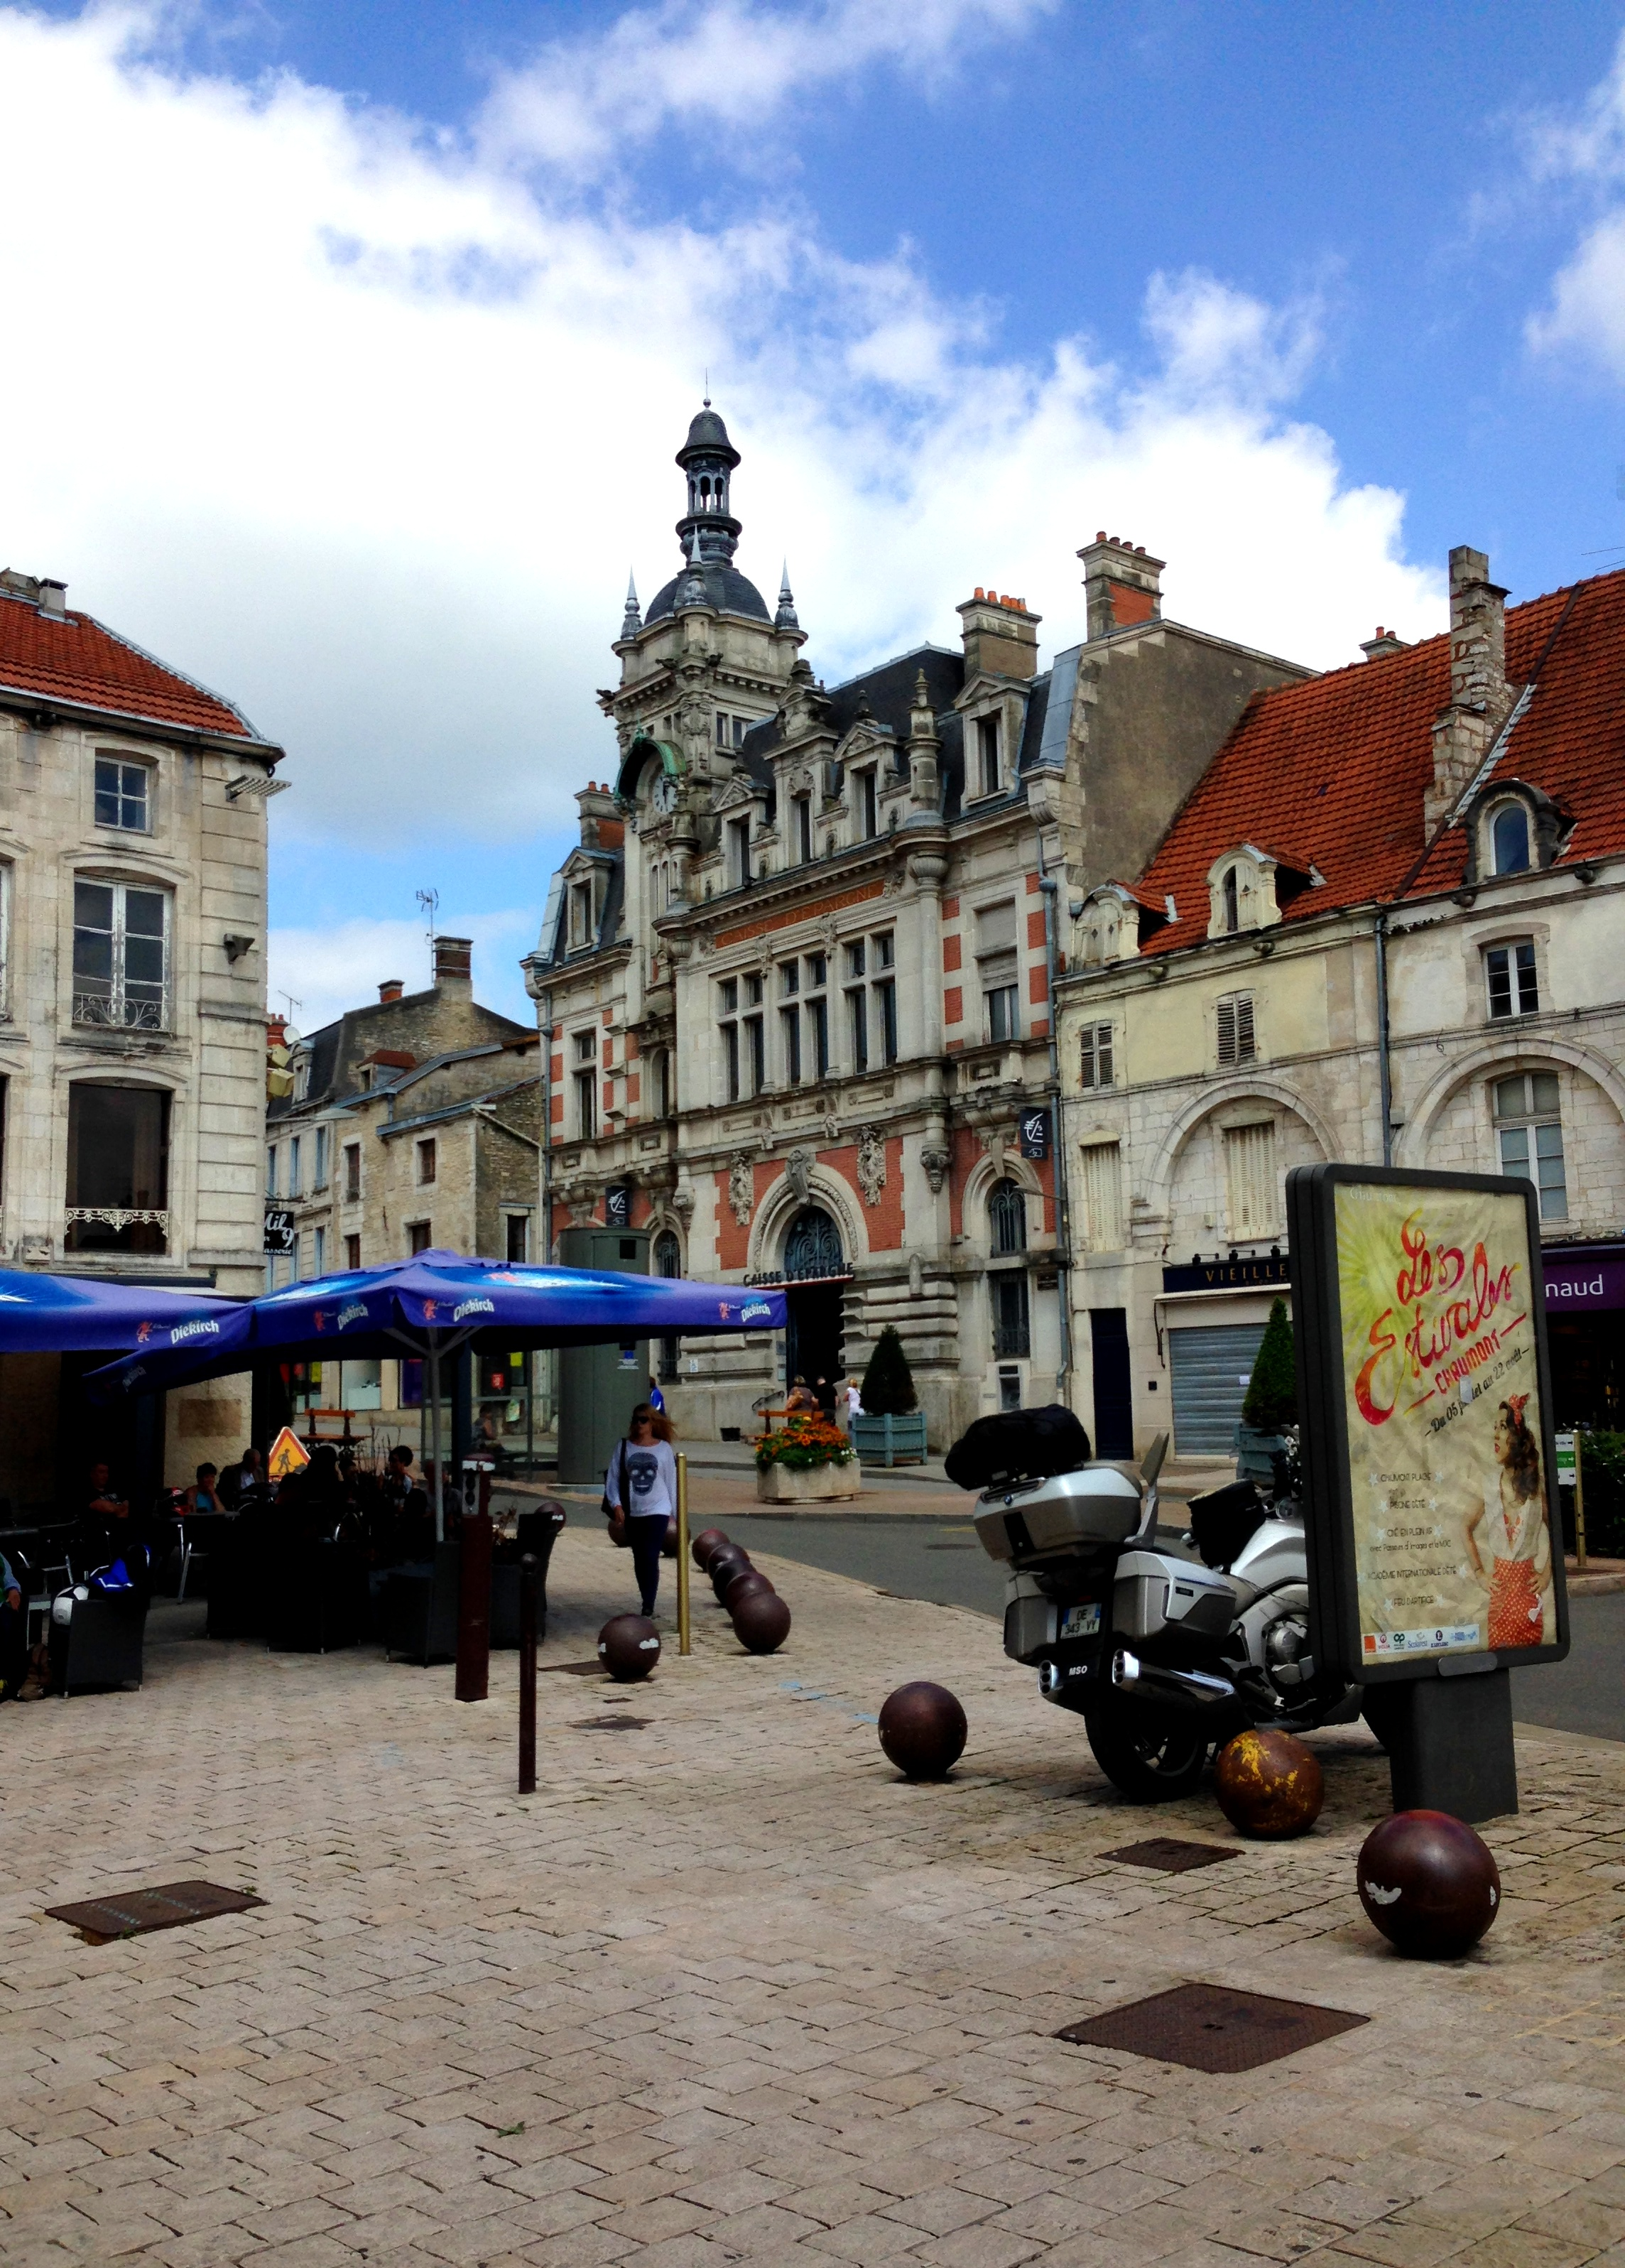 Downtown Chaumont – Part II